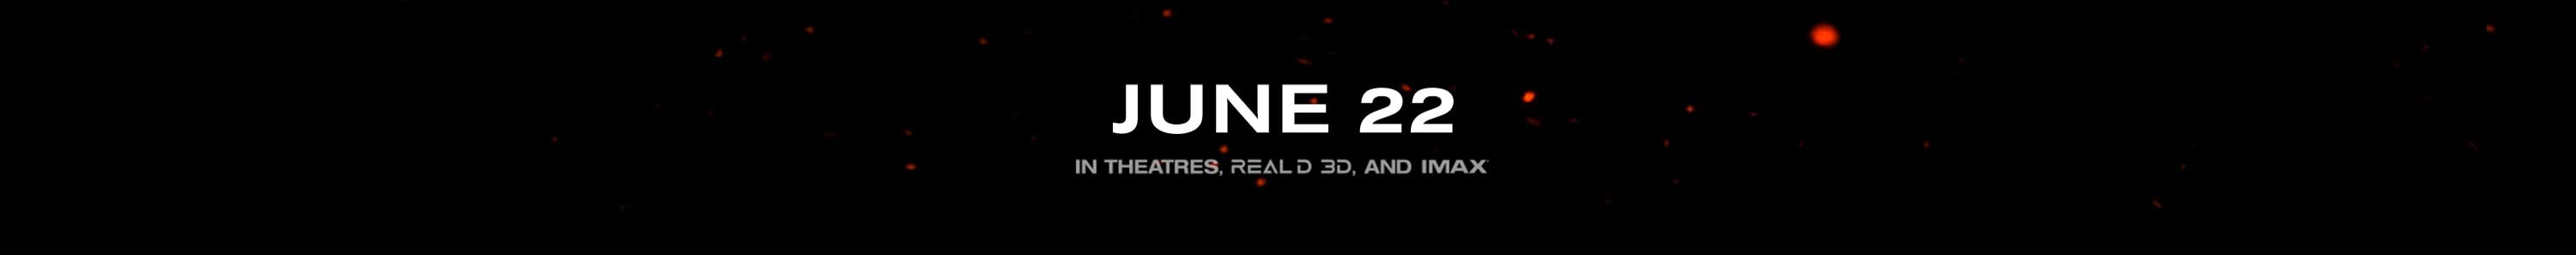 In theaters June 22